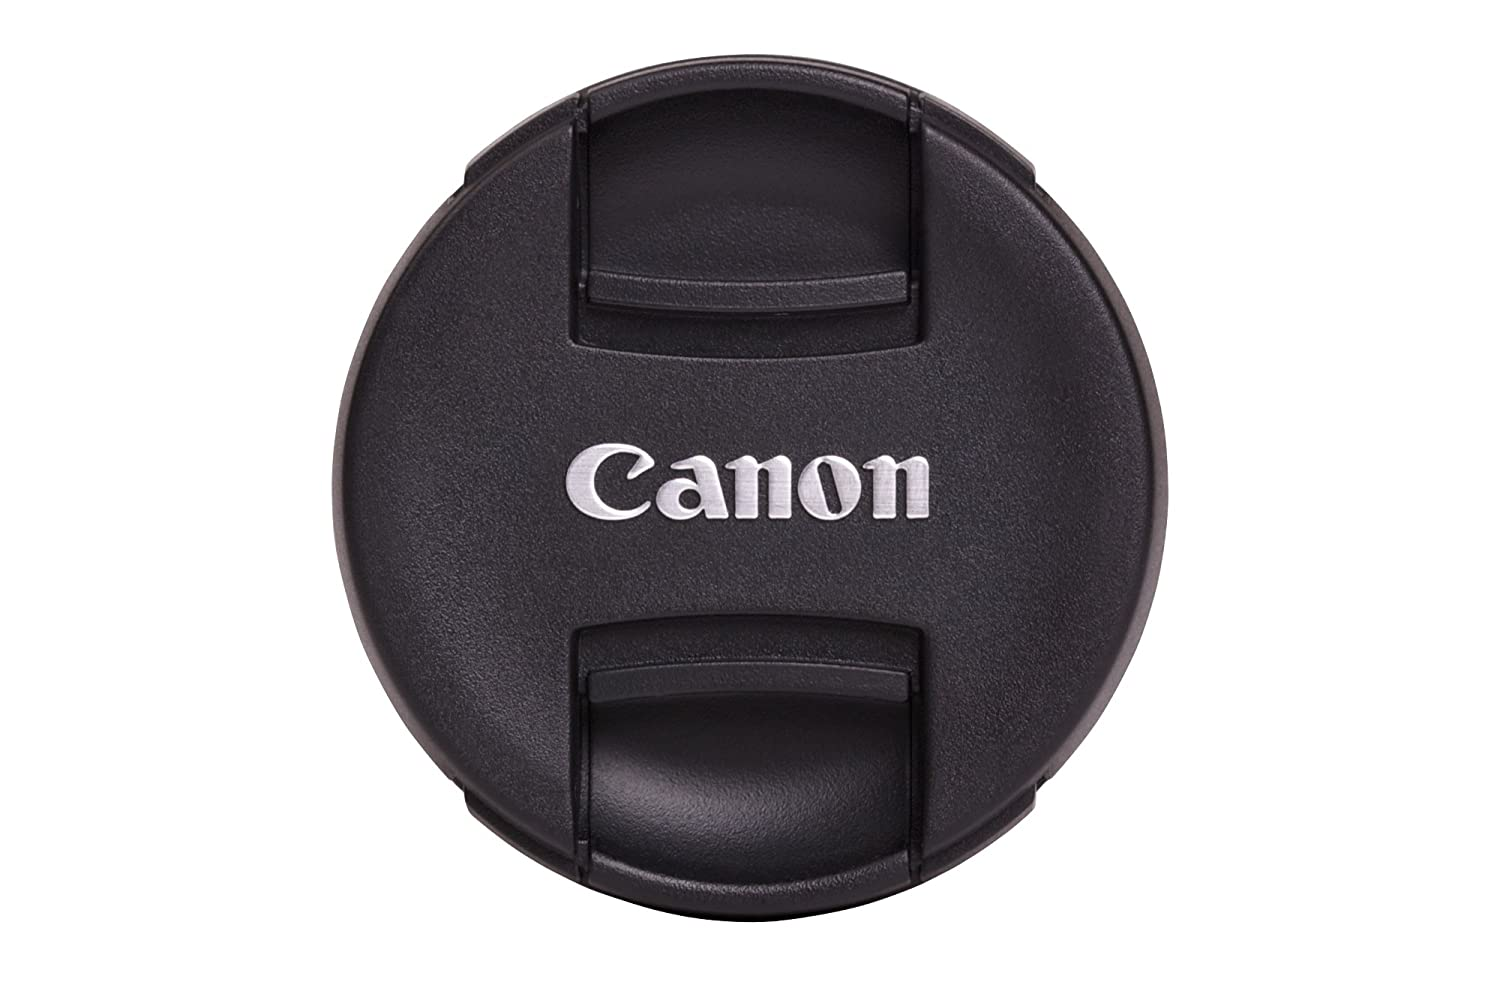 79042c209 Canon E-52II Lens Cap for 52mm Thread: Amazon.co.uk: Camera & Photo